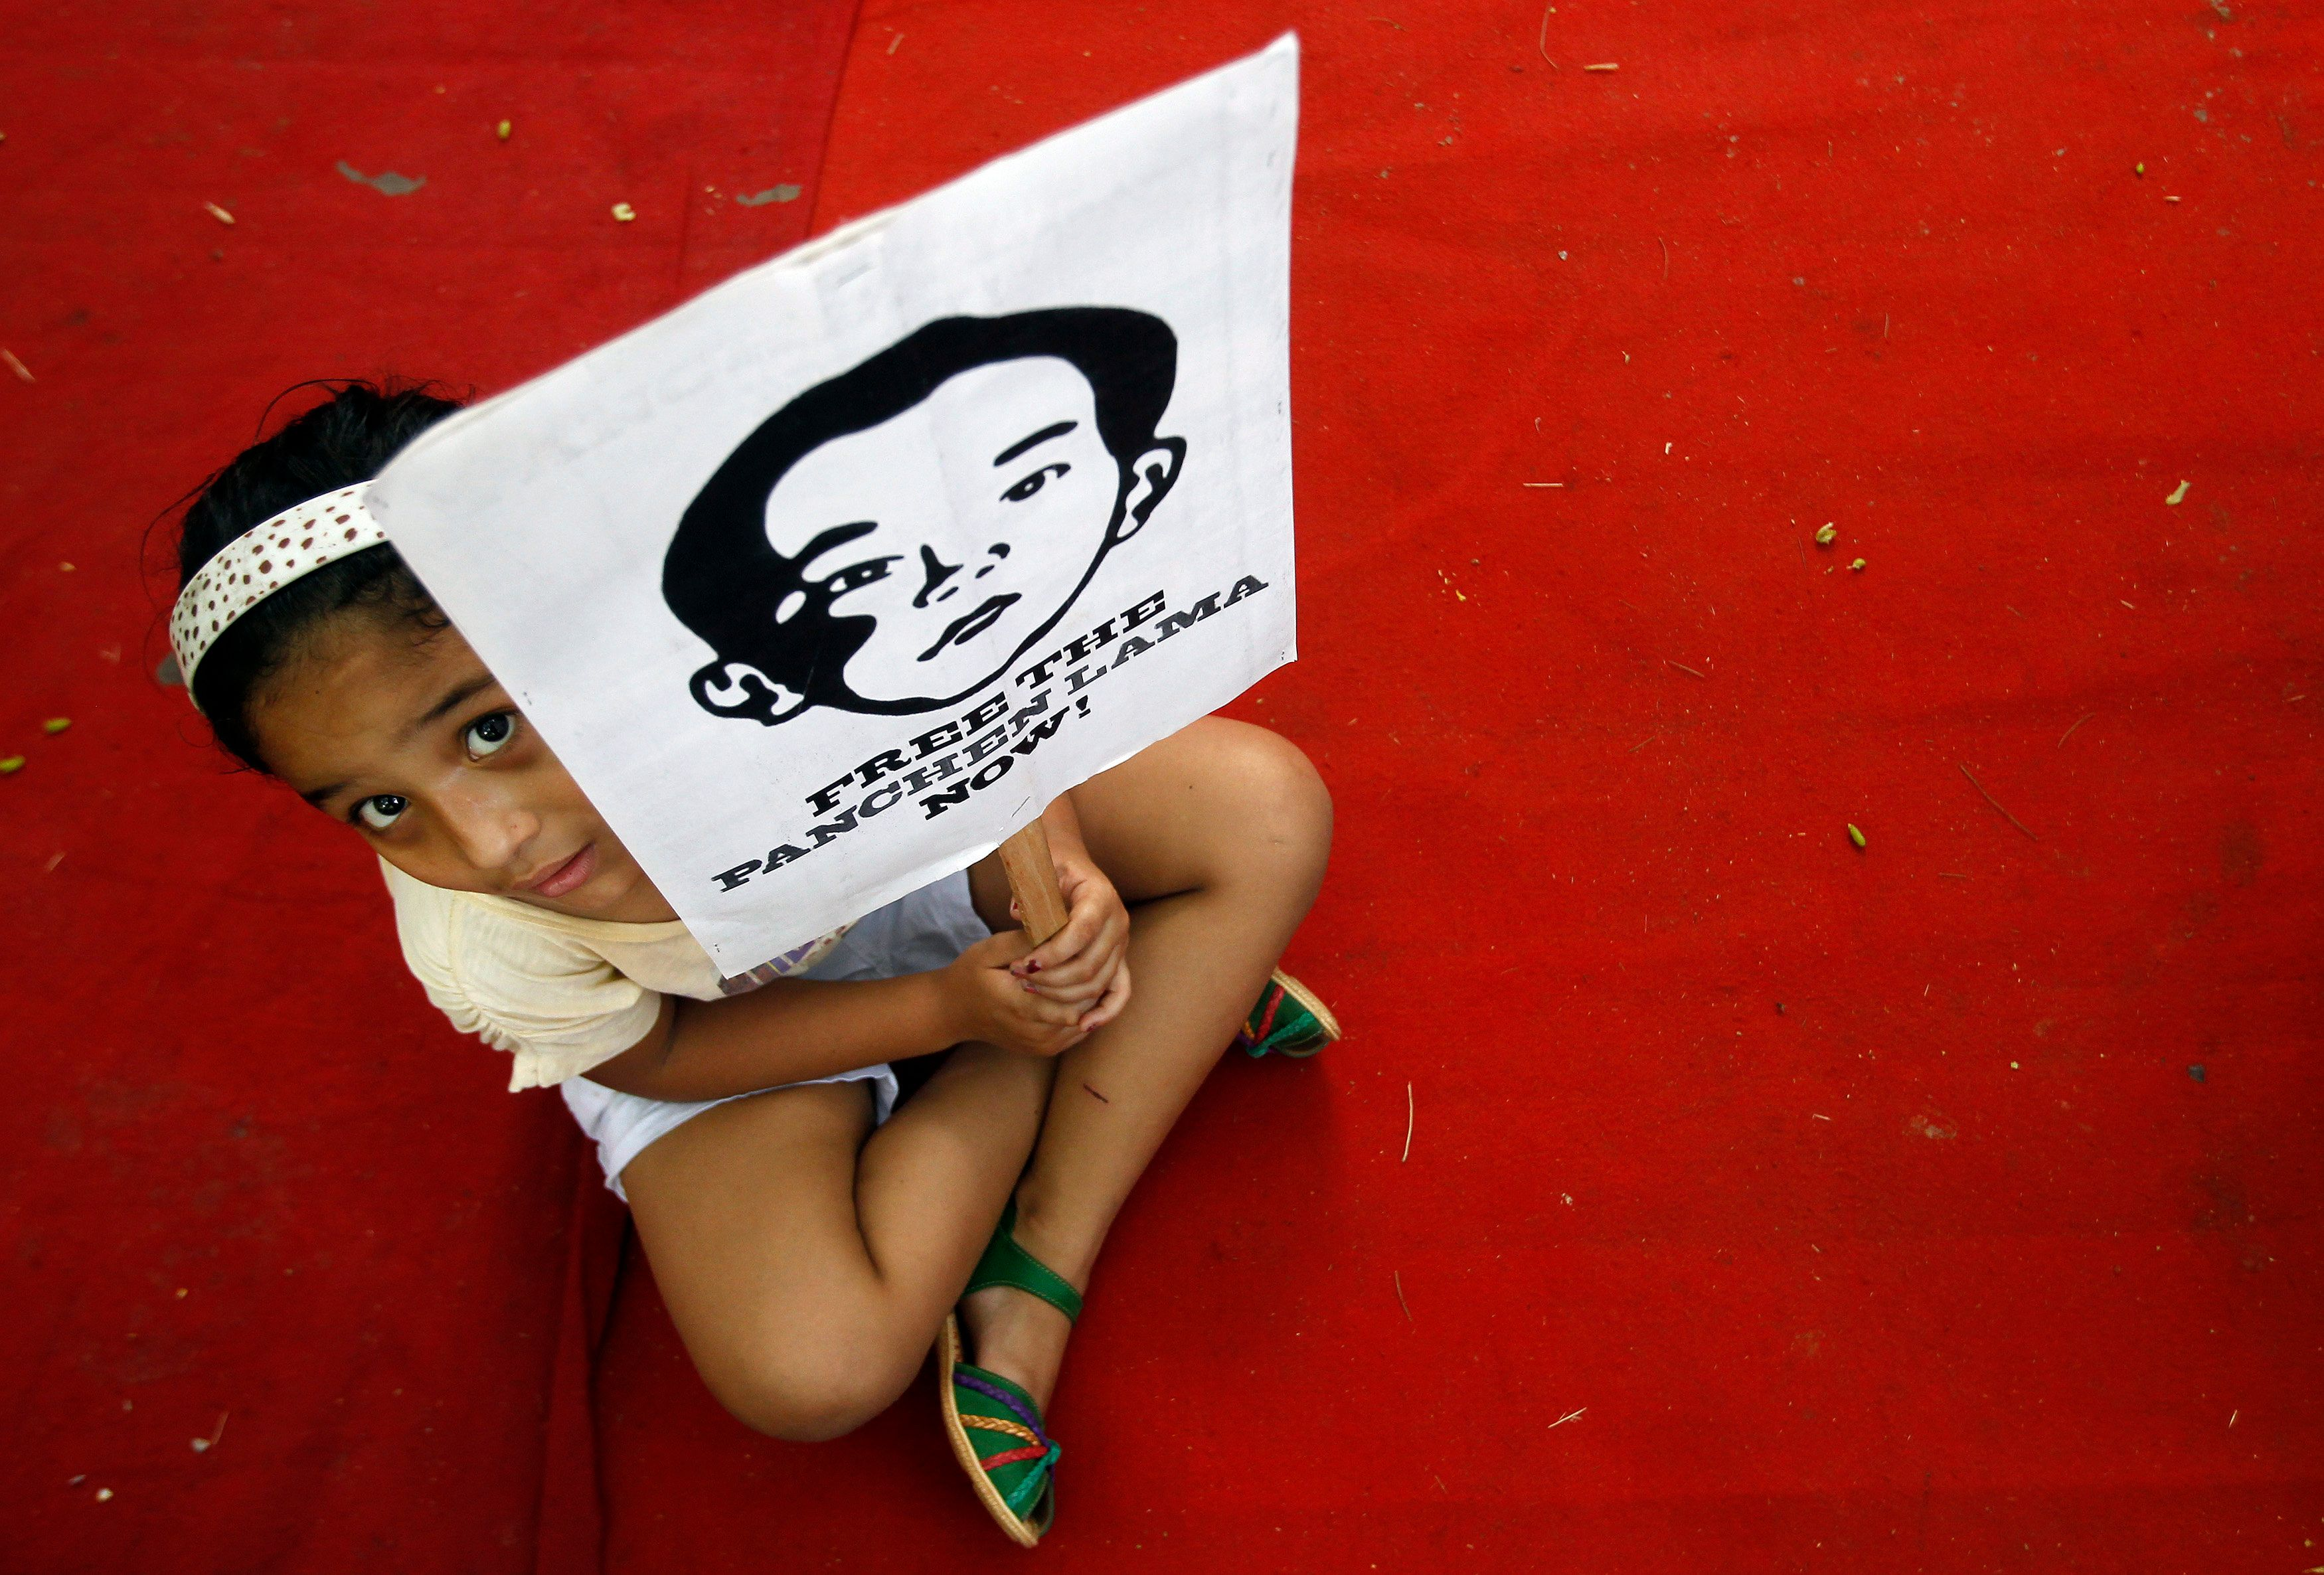 A Tibetan girl holds a placard featuring Gedhun Choekyi Nyima, the 11th Panchen Lama, during a protest ahead of Chinese Premier Li Keqiang's visit to India, in New Delhi May 17, 2013. Dozens of Tibetans on Friday held a protest demanding the release of Gedhun Choekyi Nyima who, according to the protesters, is in detention in China. Li is scheduled to arrive in New Delhi on May 19. REUTERS/Anindito Mukherjee (INDIA - Tags: POLITICS CIVIL UNREST)